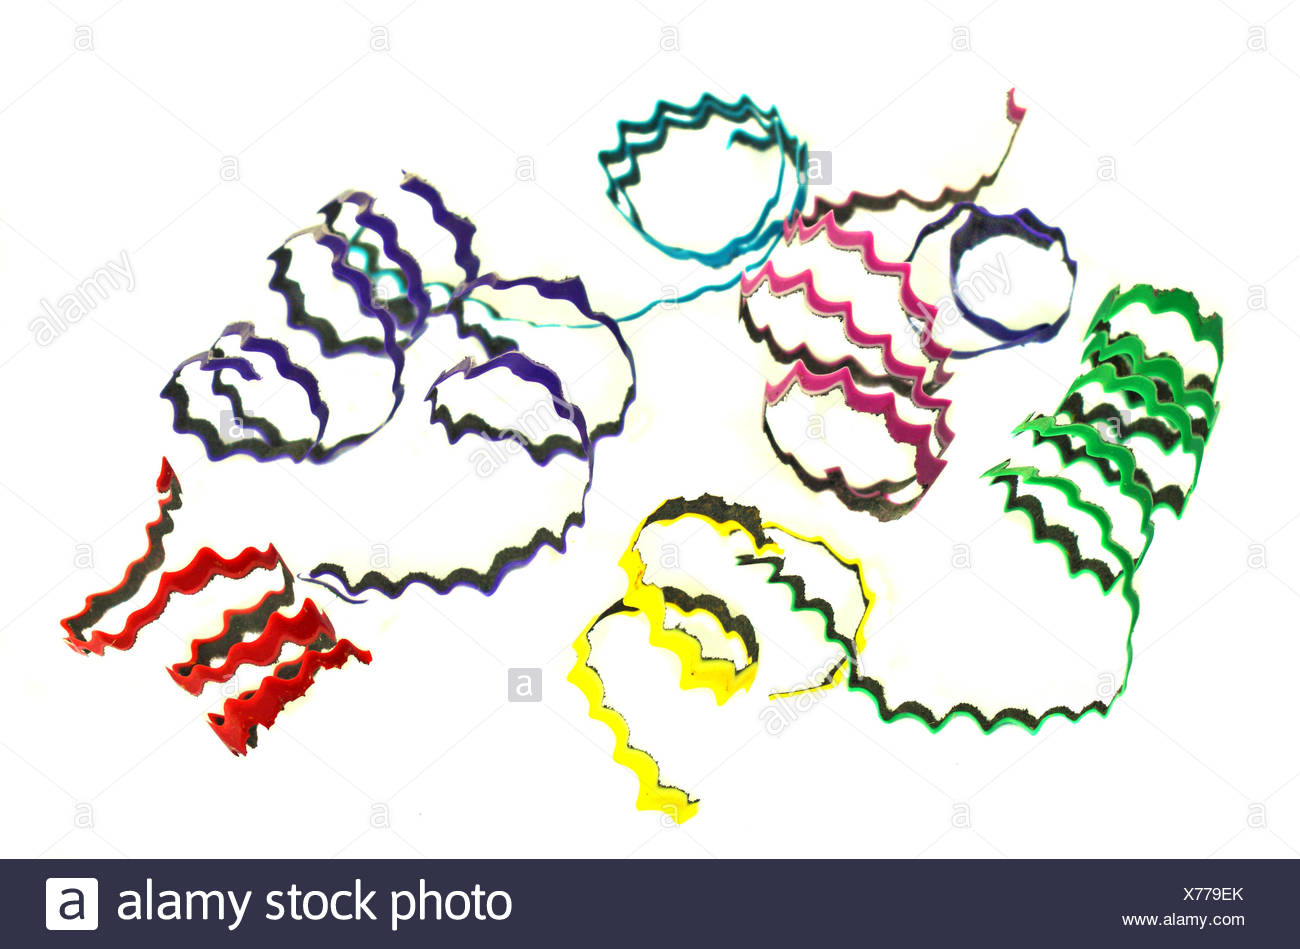 Colorful pencils clippings - Stock Image